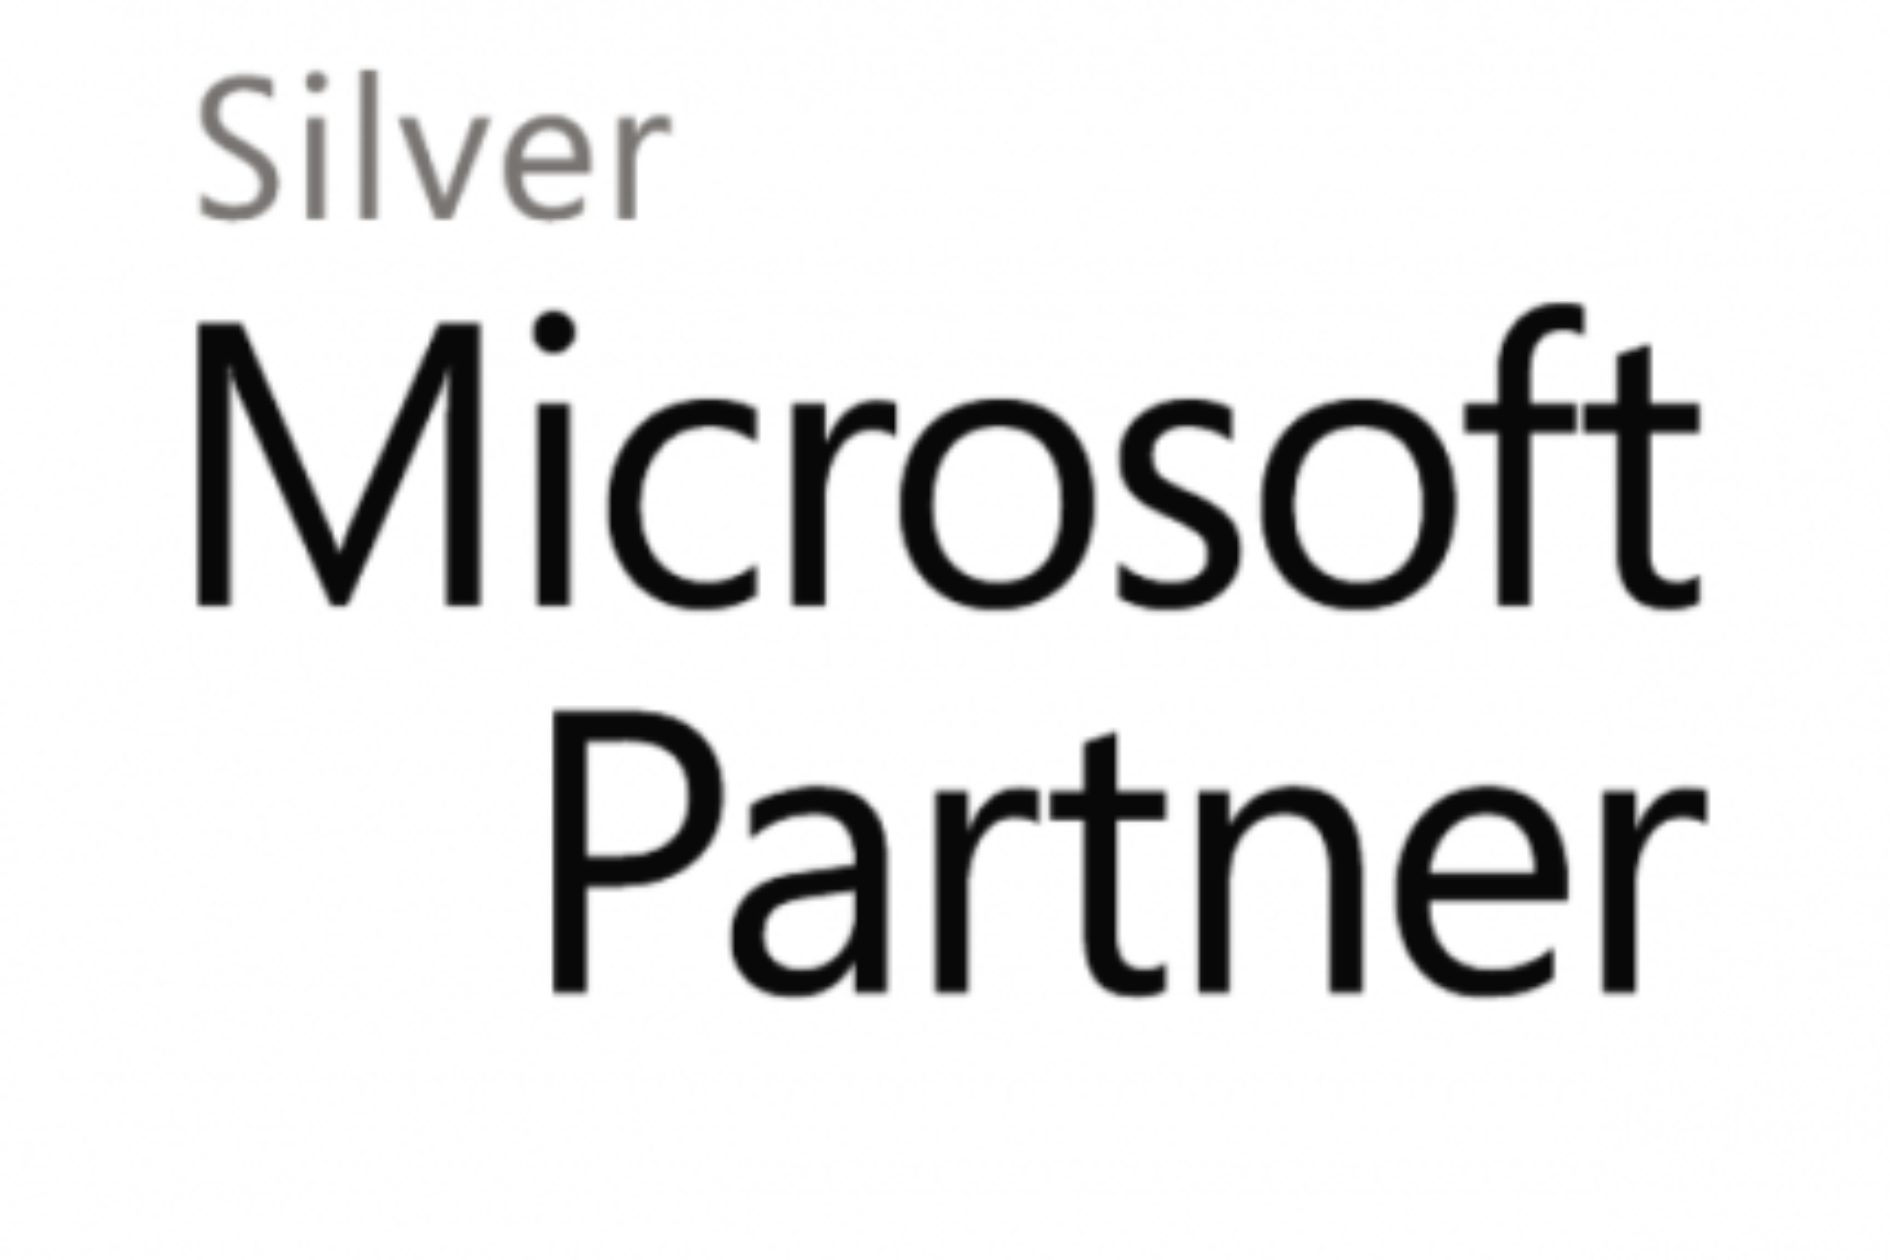 Microsoft Partner in Portsmouth Hampshire